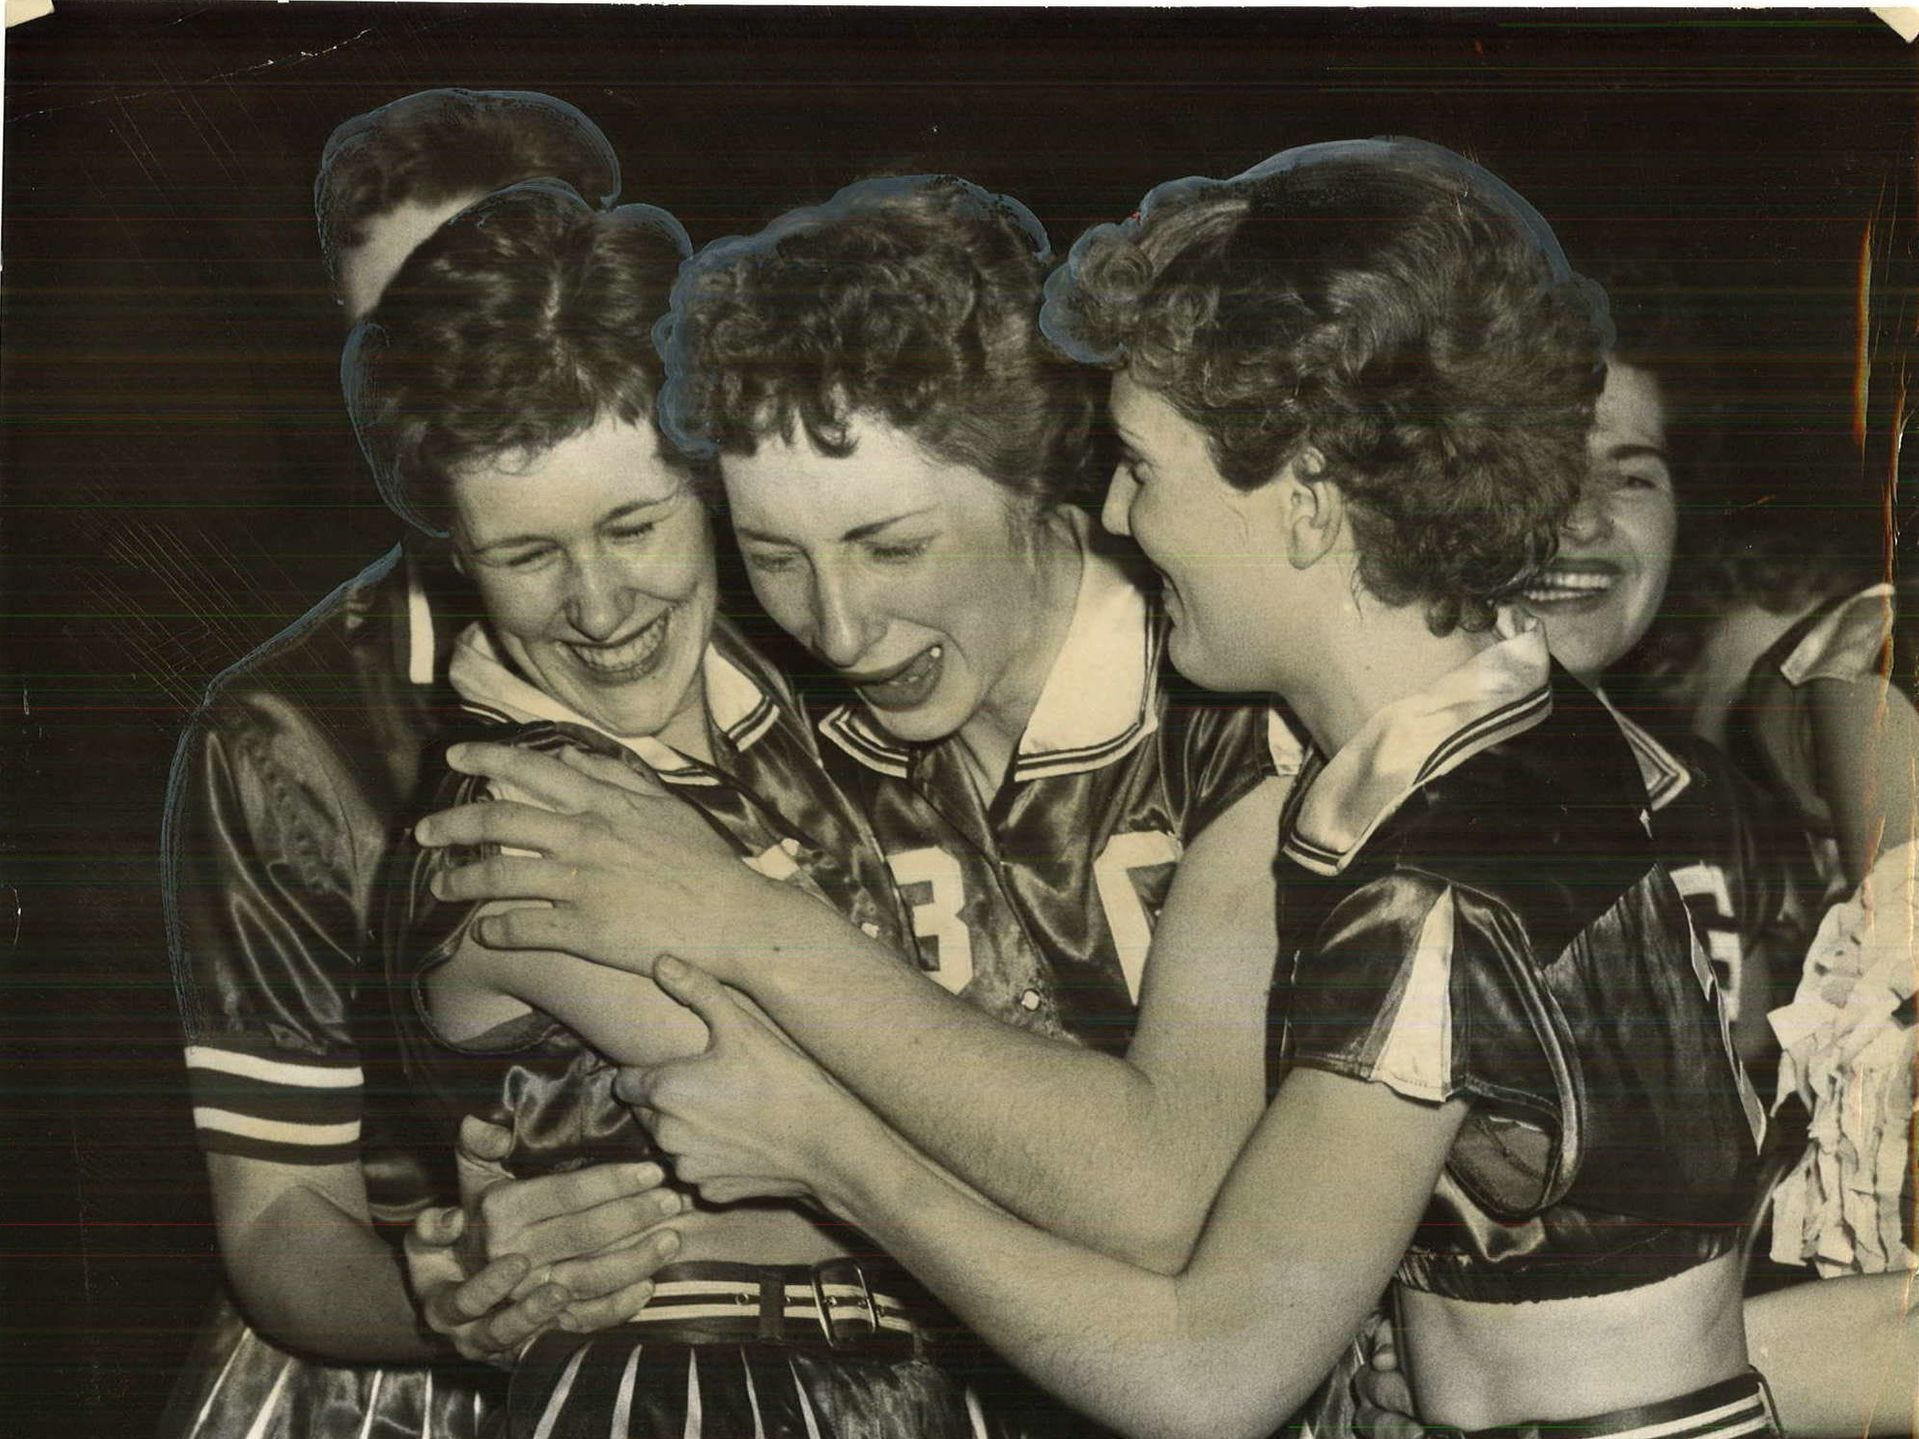 1957: Garrison player Barbara Beyer, center, cries after her teamÕs win over Maynard in the state girlsÕ basketball tournament. She is surrounded by teammates Sylvia Froning and Delores Selk. Register file photo